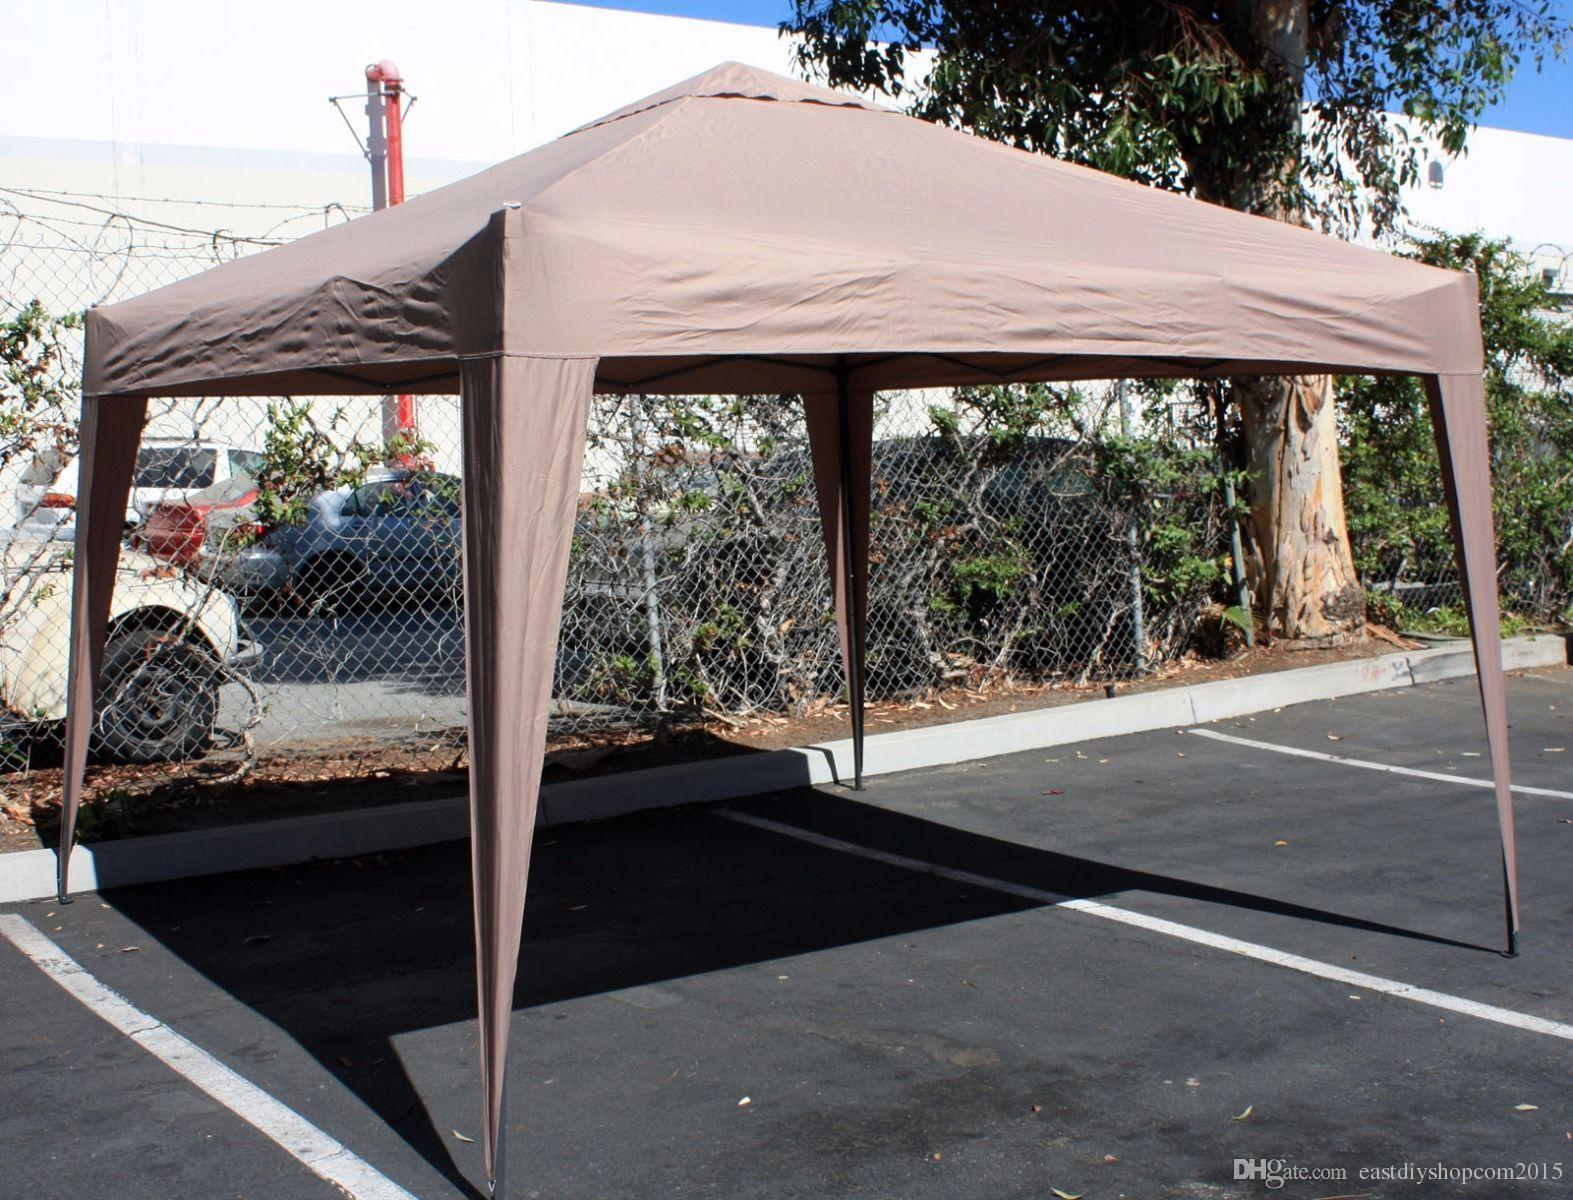 Portable Outdoor Canopy : Lightweight and portable outdoor shade shelter ez pop up